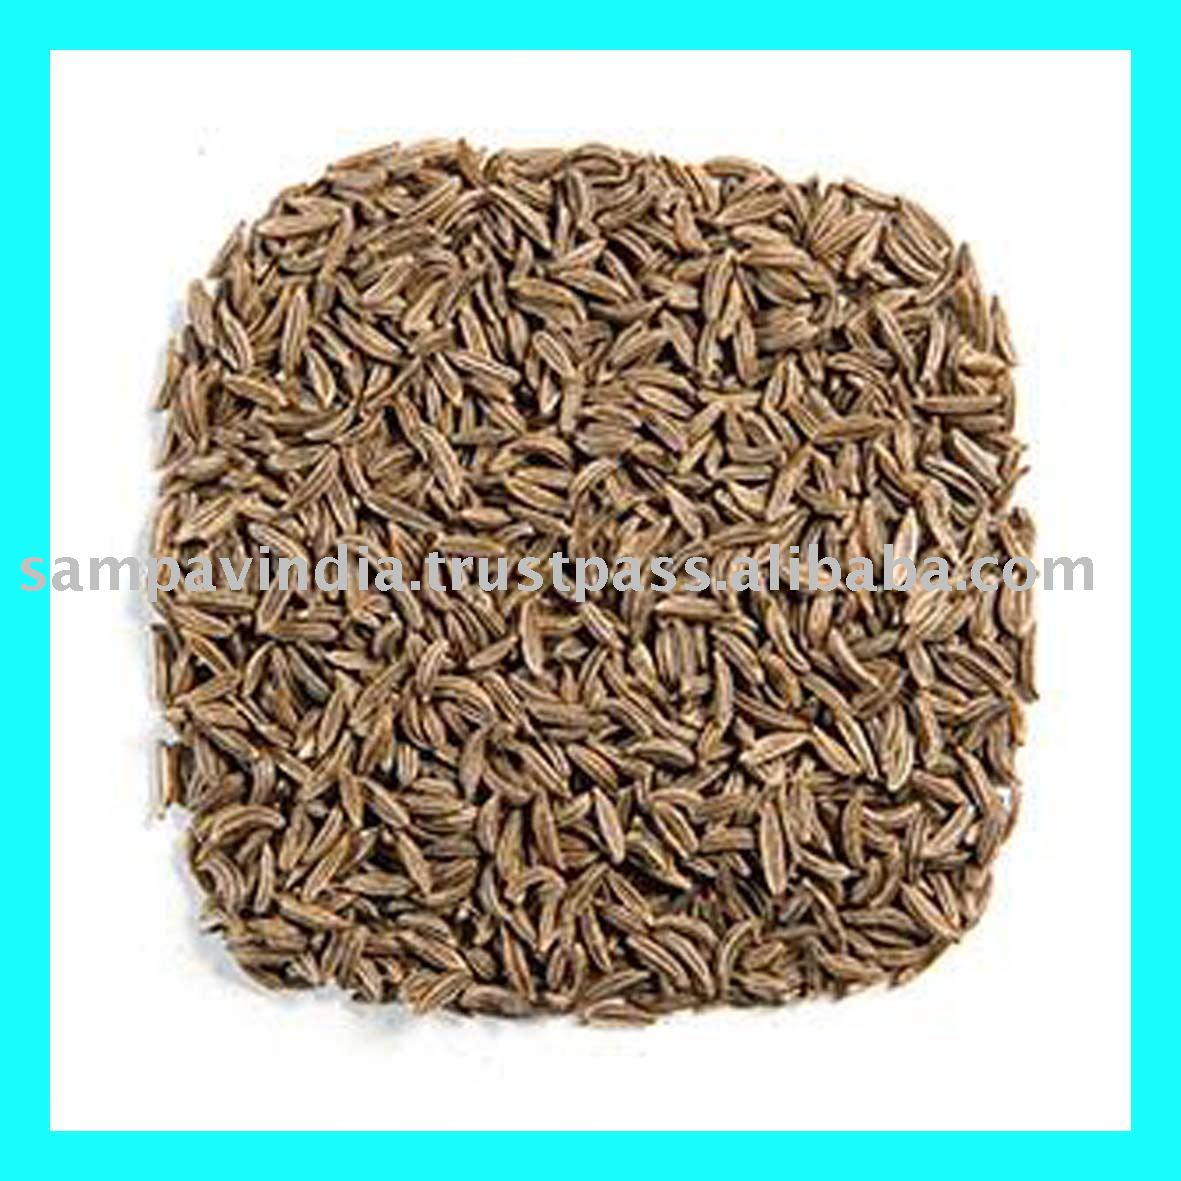 CARAWAY SEEDS products,India CARAWAY SEEDS supplier Caraway Seeds Indian Name